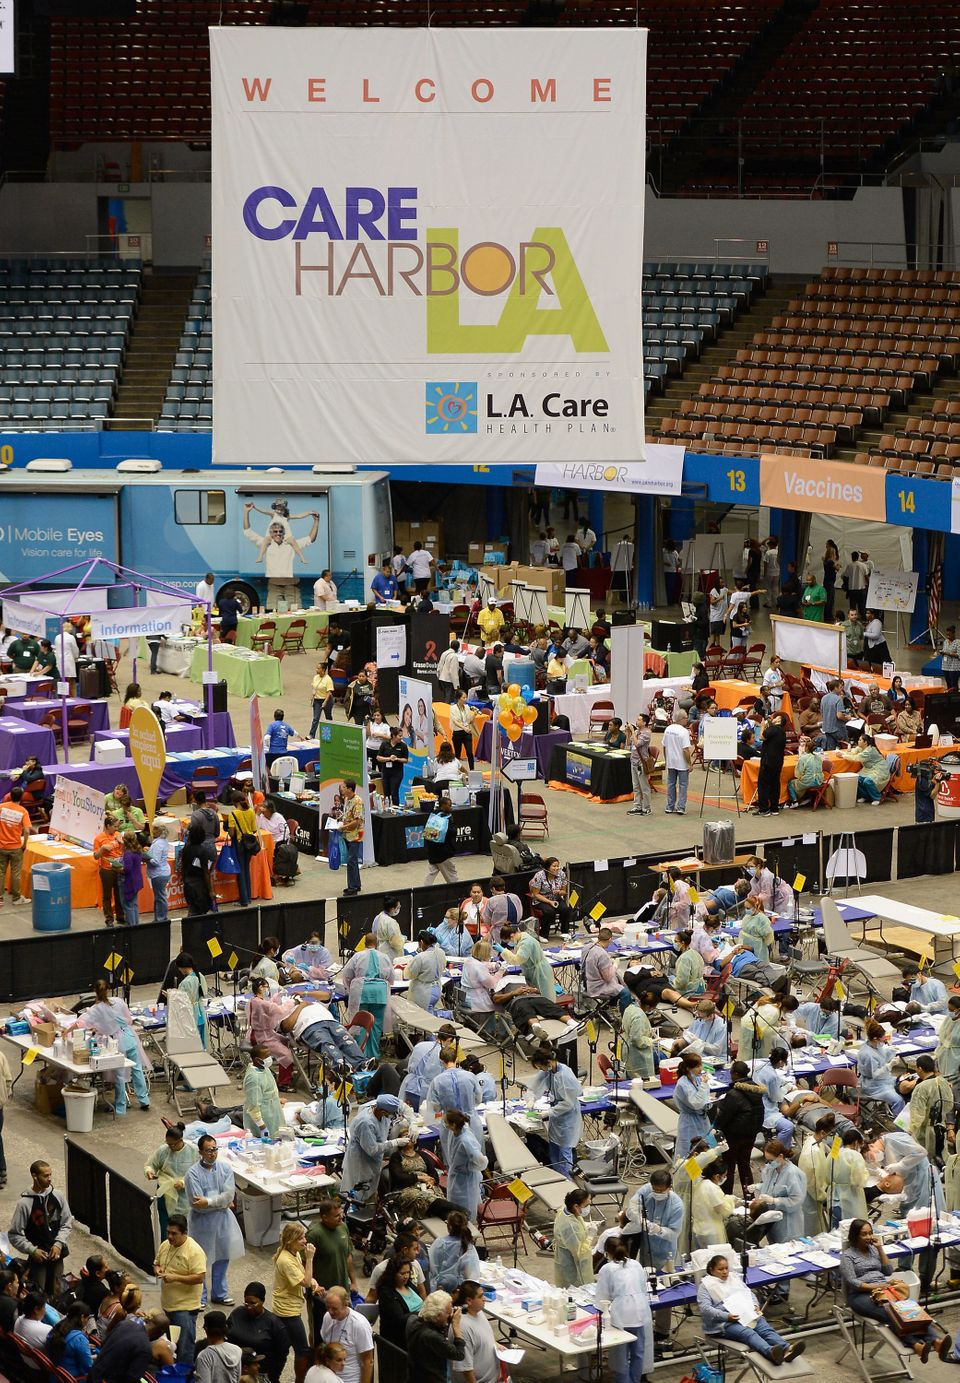 Free dental work is performed as part of the Care Harbor clinic at the Los Angeles Sports Arena on Sept. 27, 2012. Care Harbo